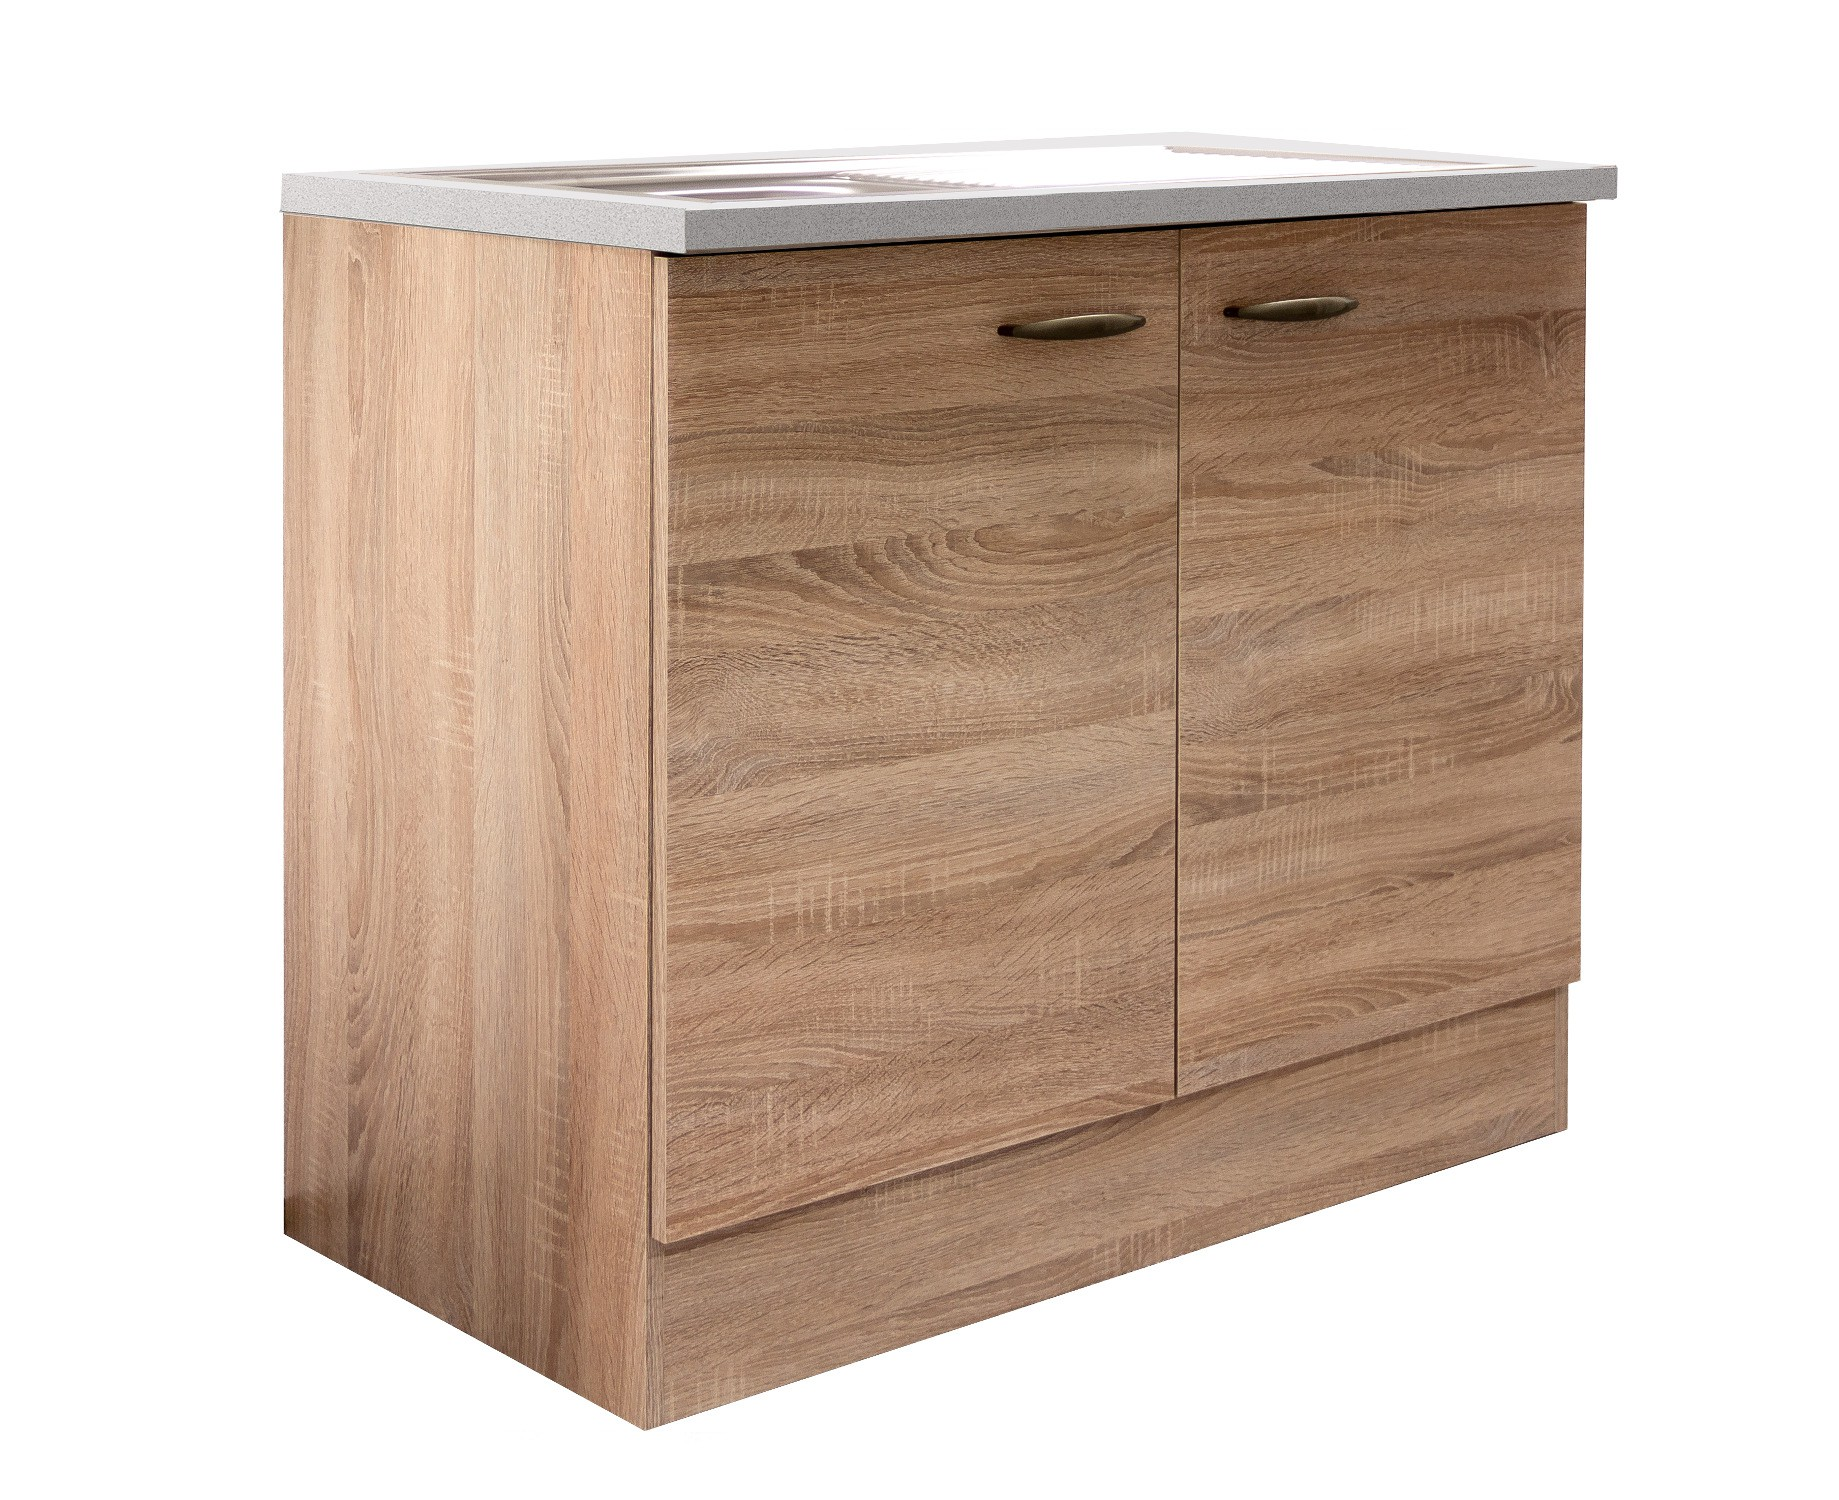 sp lenschrank herne k che sp le sp lschrank 100 x 60 cm eiche sonoma ebay. Black Bedroom Furniture Sets. Home Design Ideas